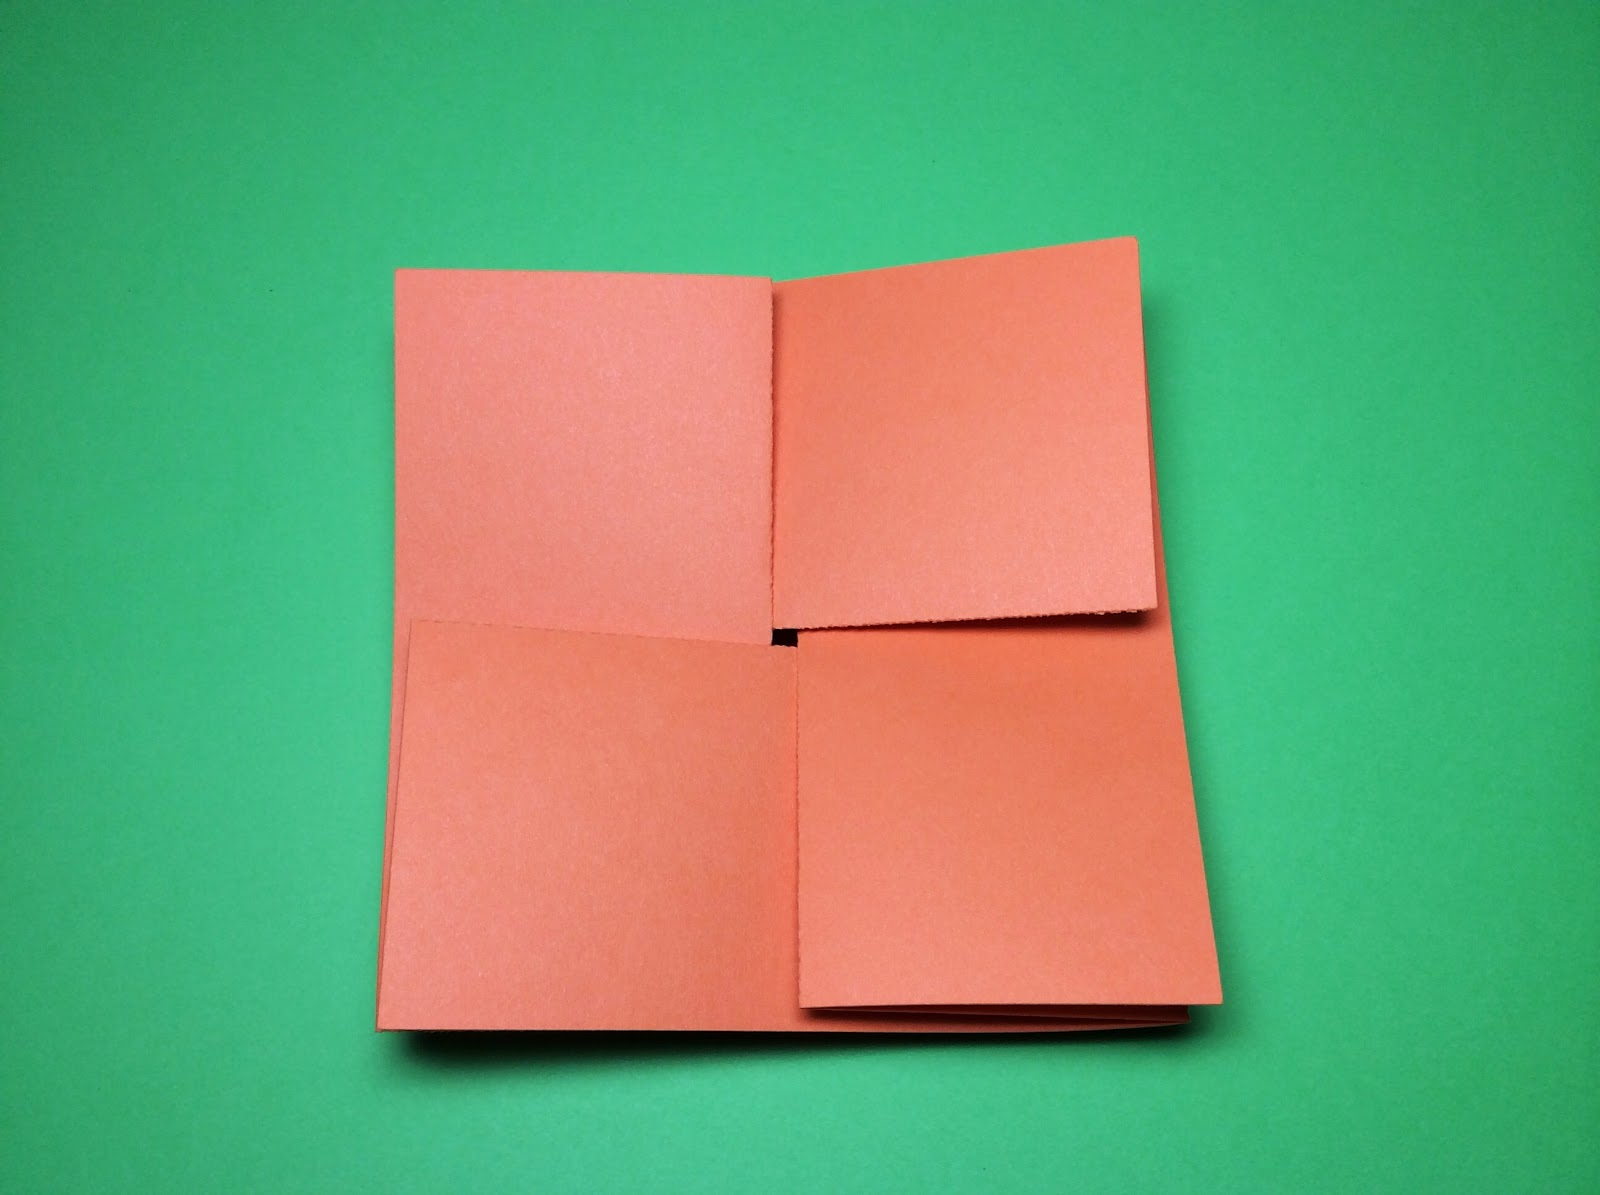 Papercrafts And Other Fun Things An Origami Square Card With A